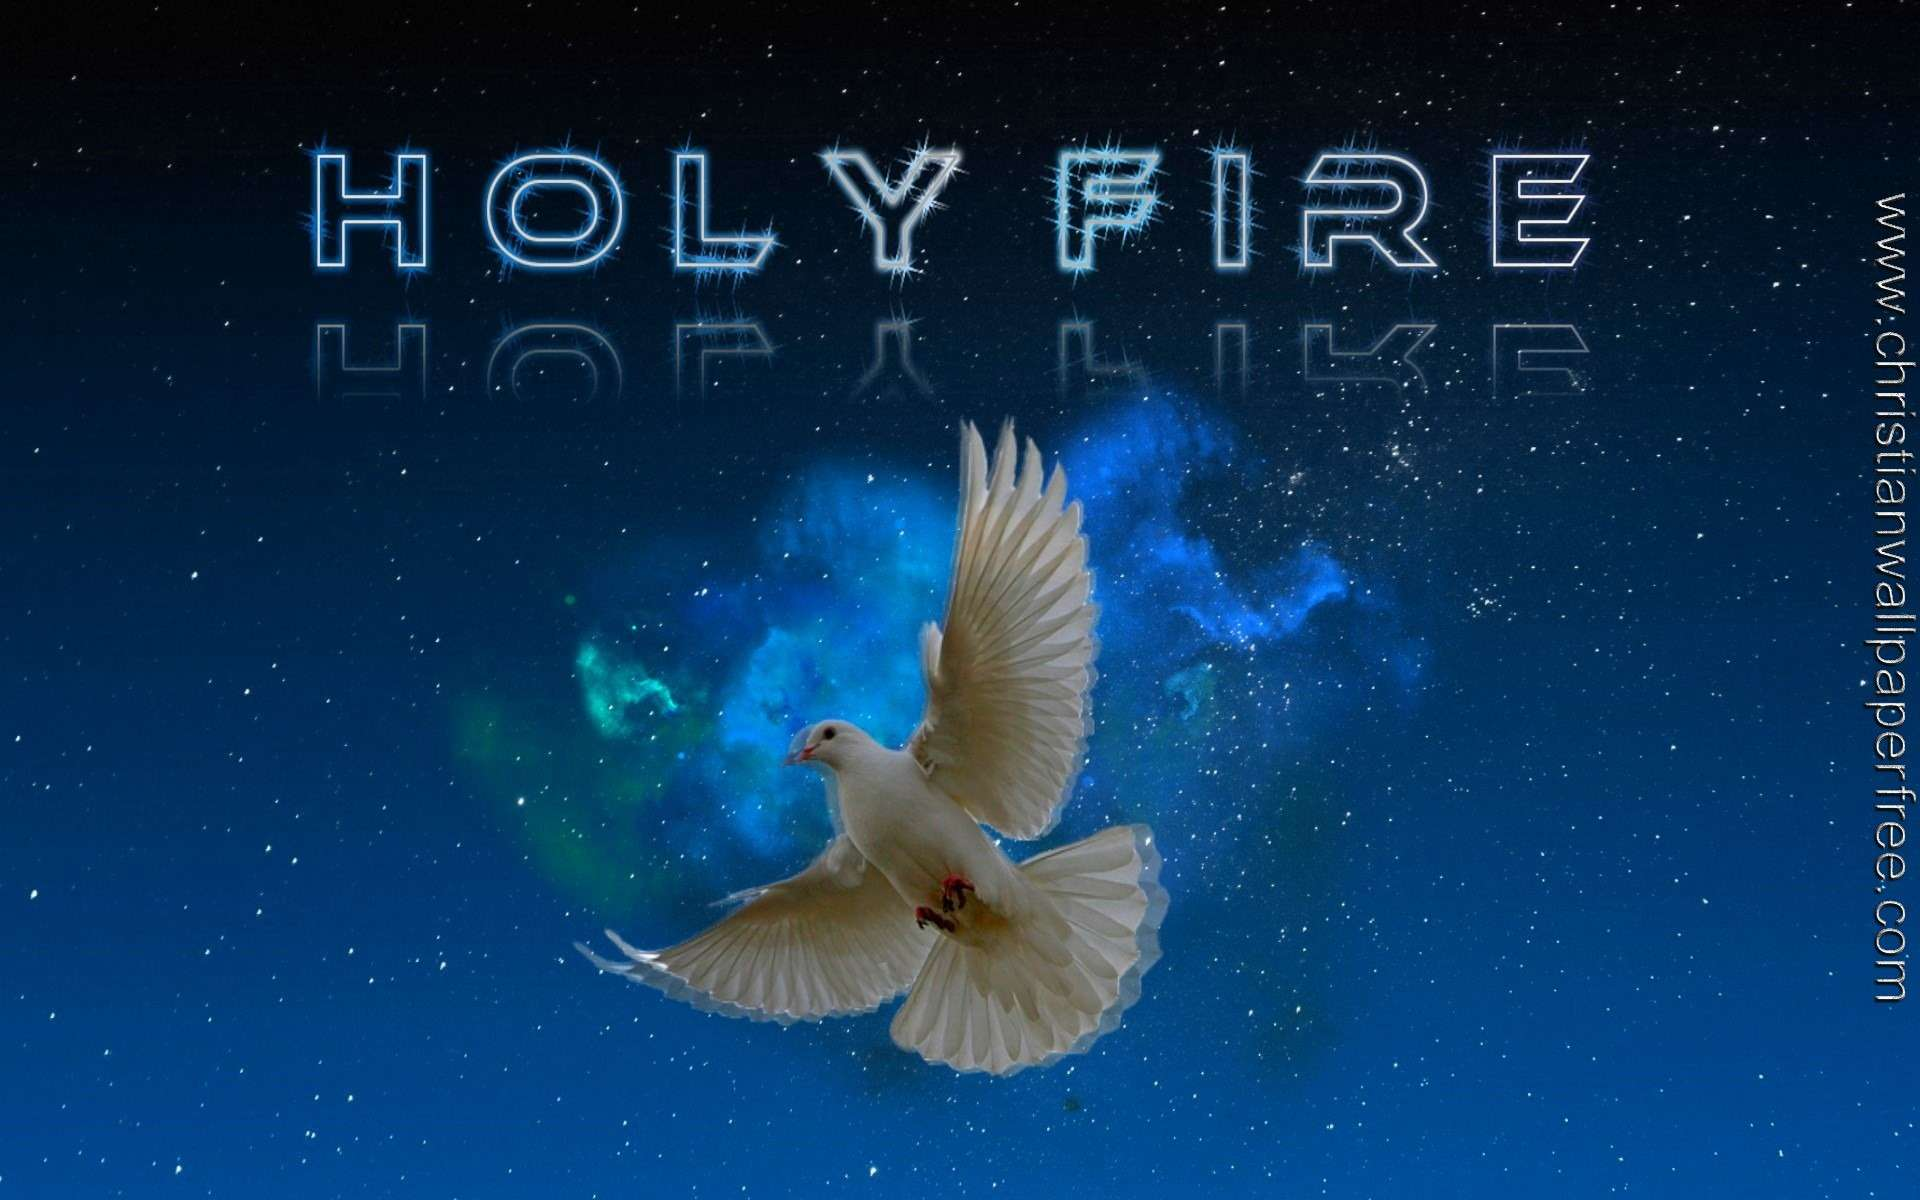 Holy fire - christian dating for free